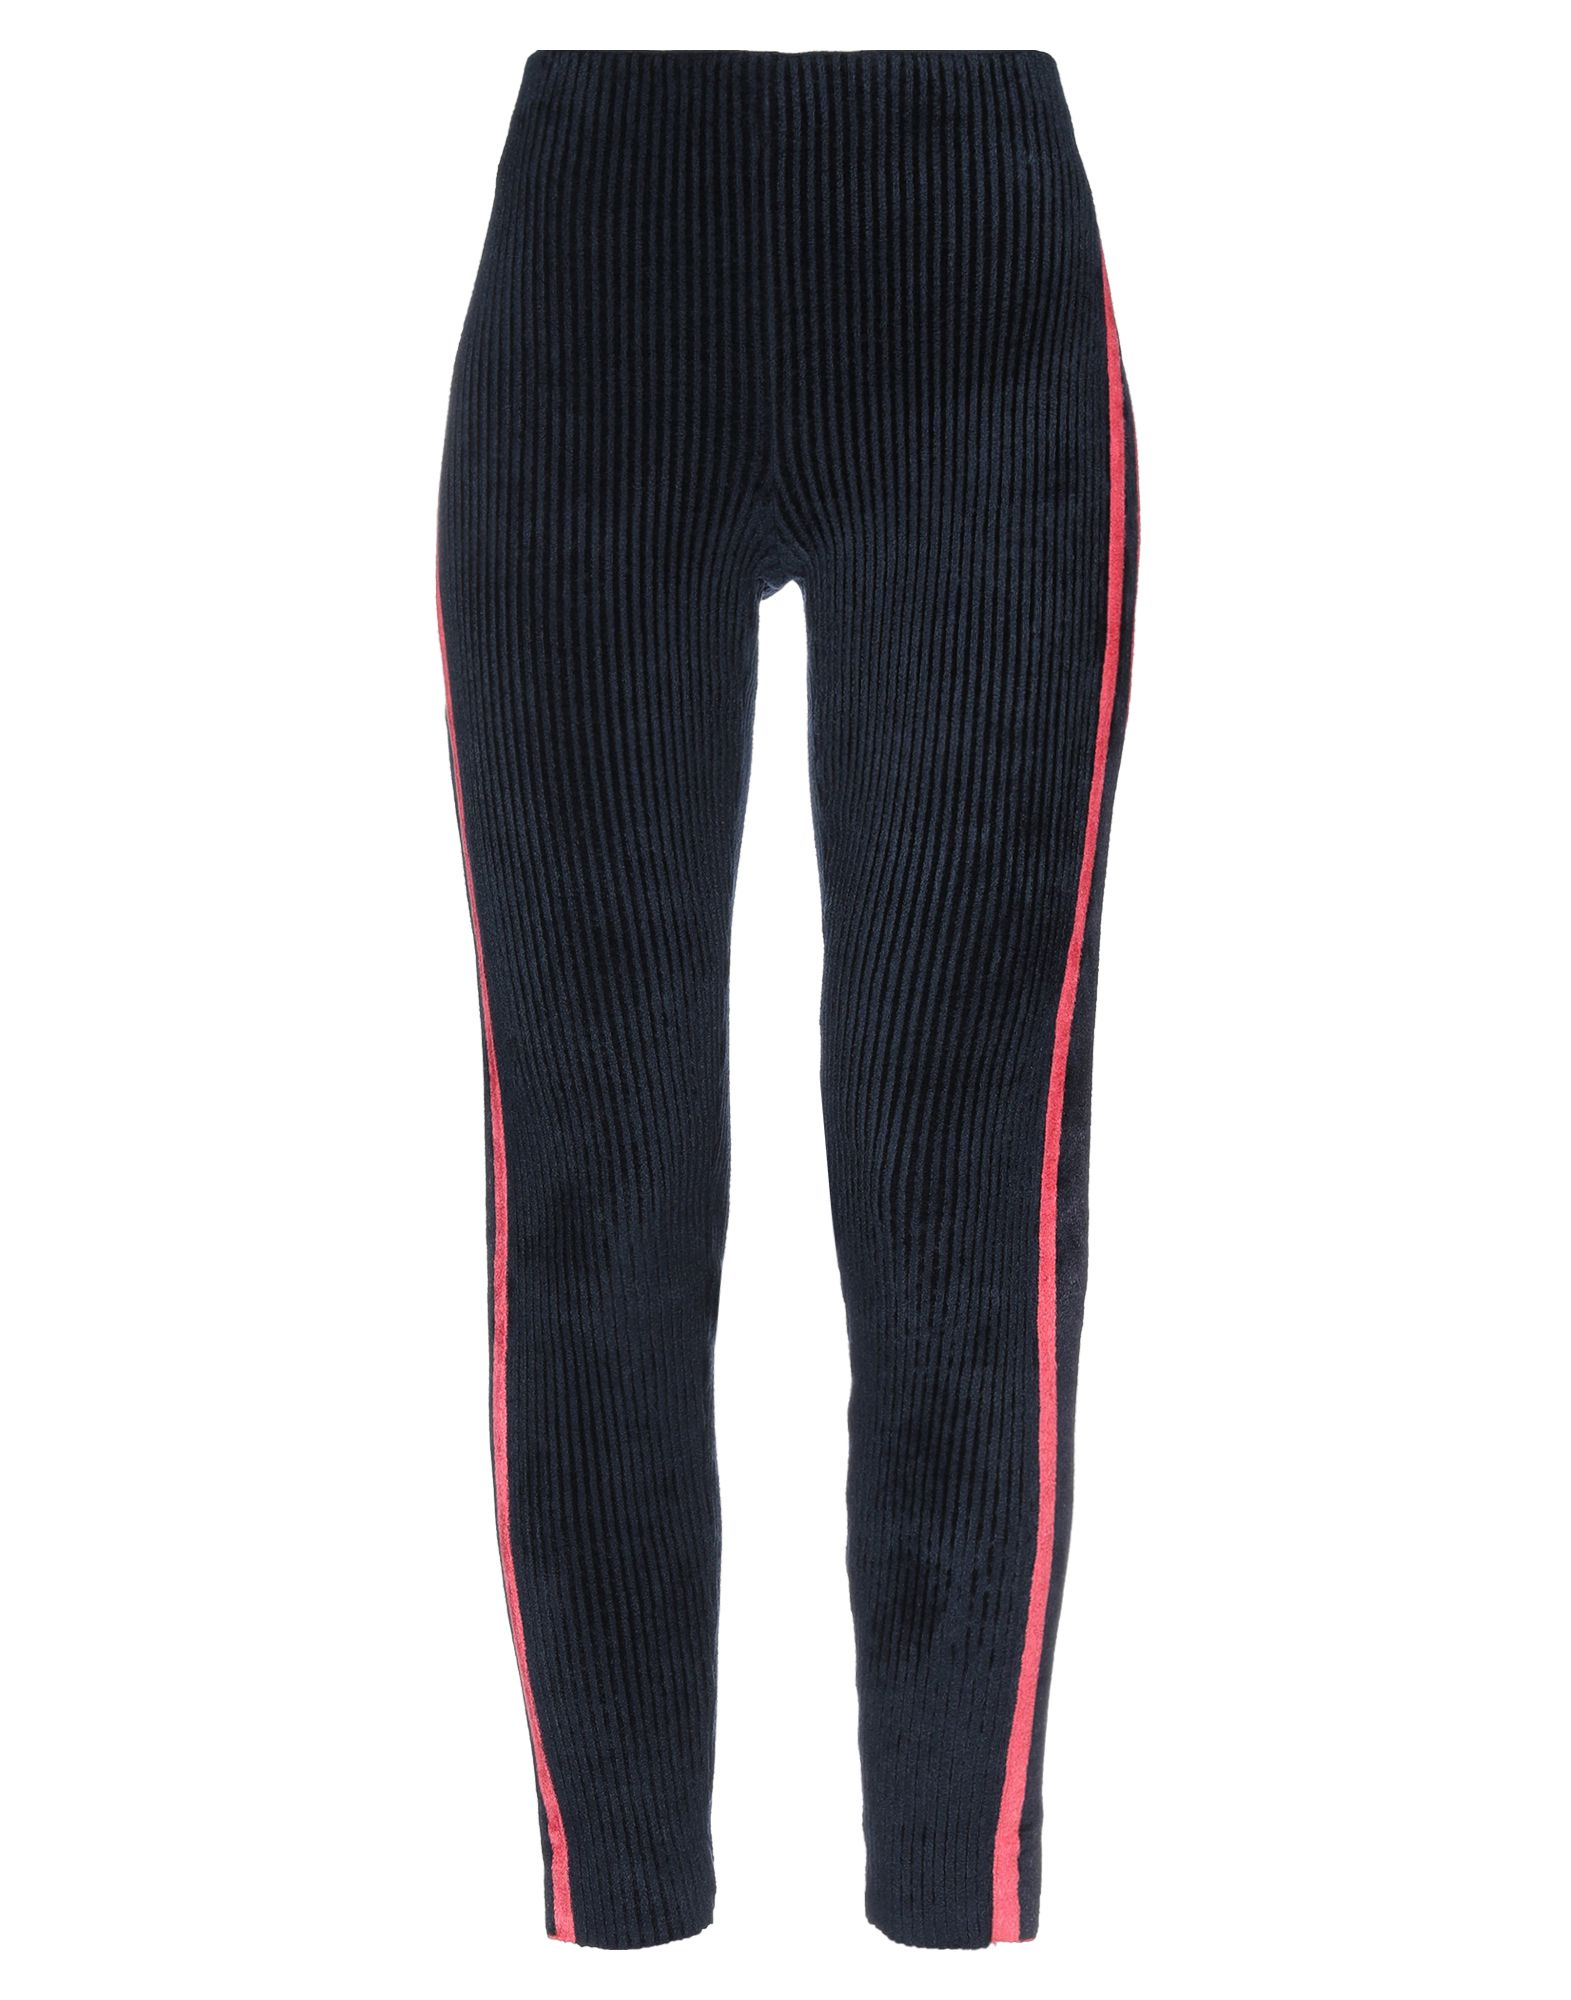 GIORGIO ARMANI Leggings. knitted, ruffles, solid color, mid rise, slim fit, tapered leg, no pockets, large sized. 63% Viscose, 37% Polyamide